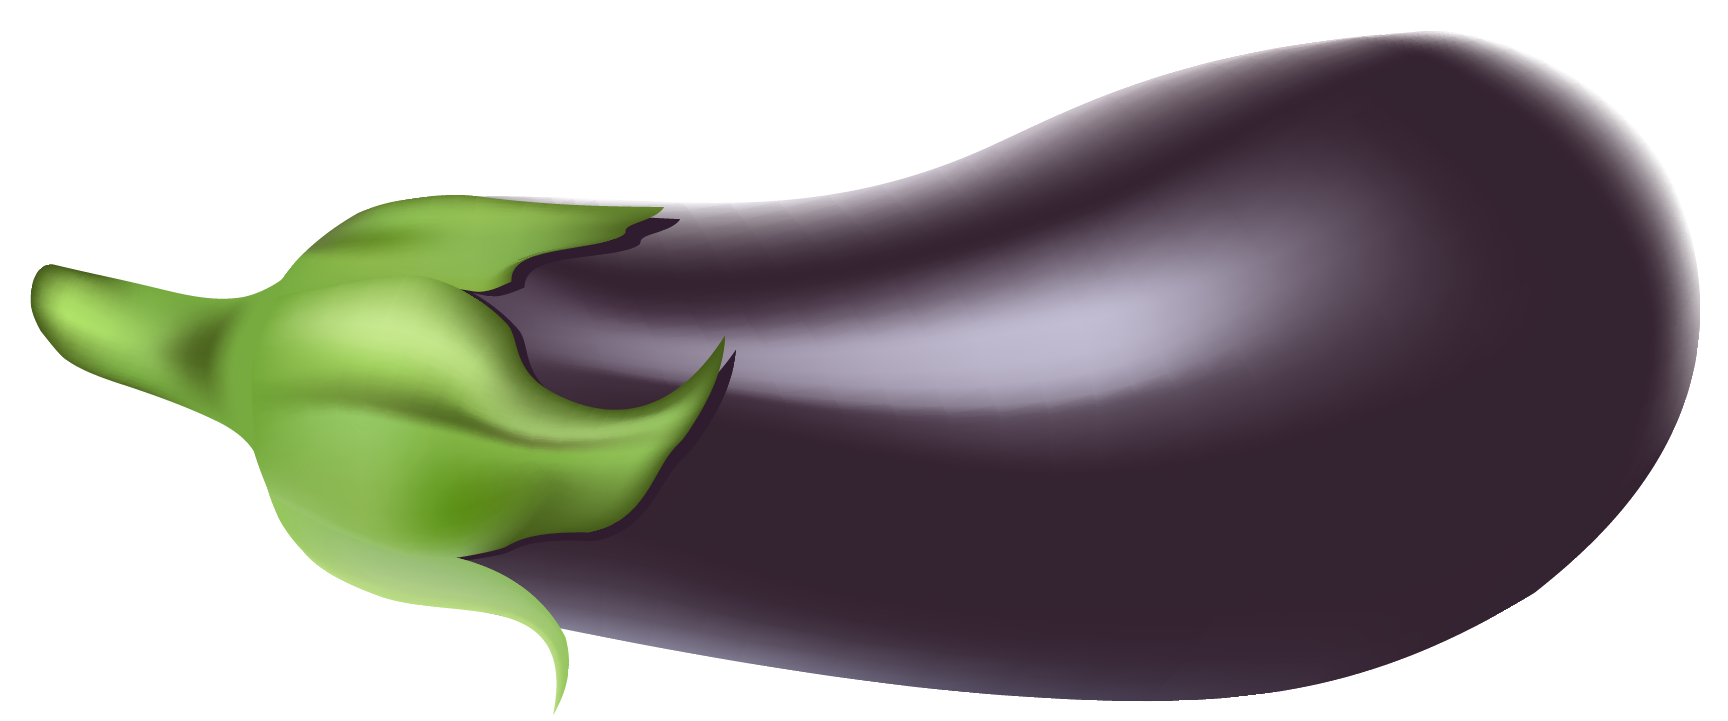 Eggplant clipart. Png picture gallery yopriceville